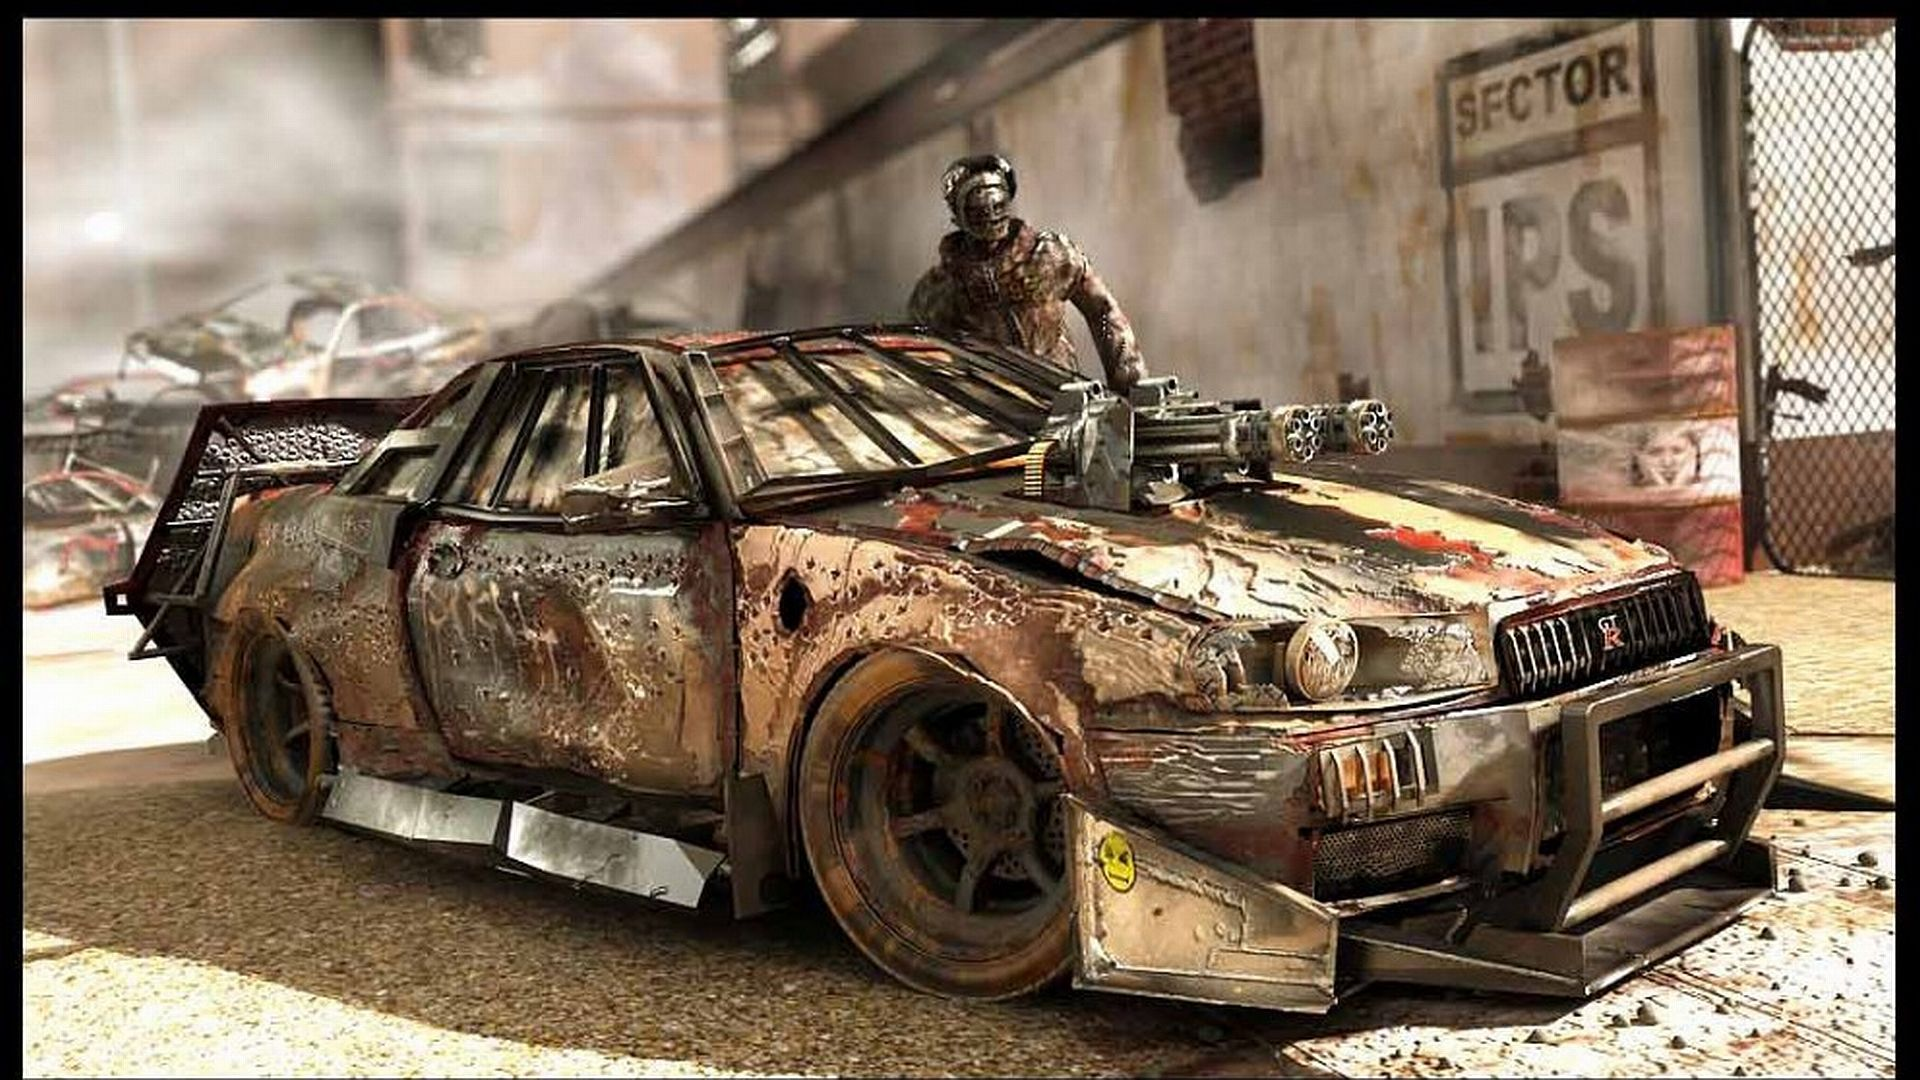 Mad Max And Death Race Cars At 11 53 Am No Comments Labels